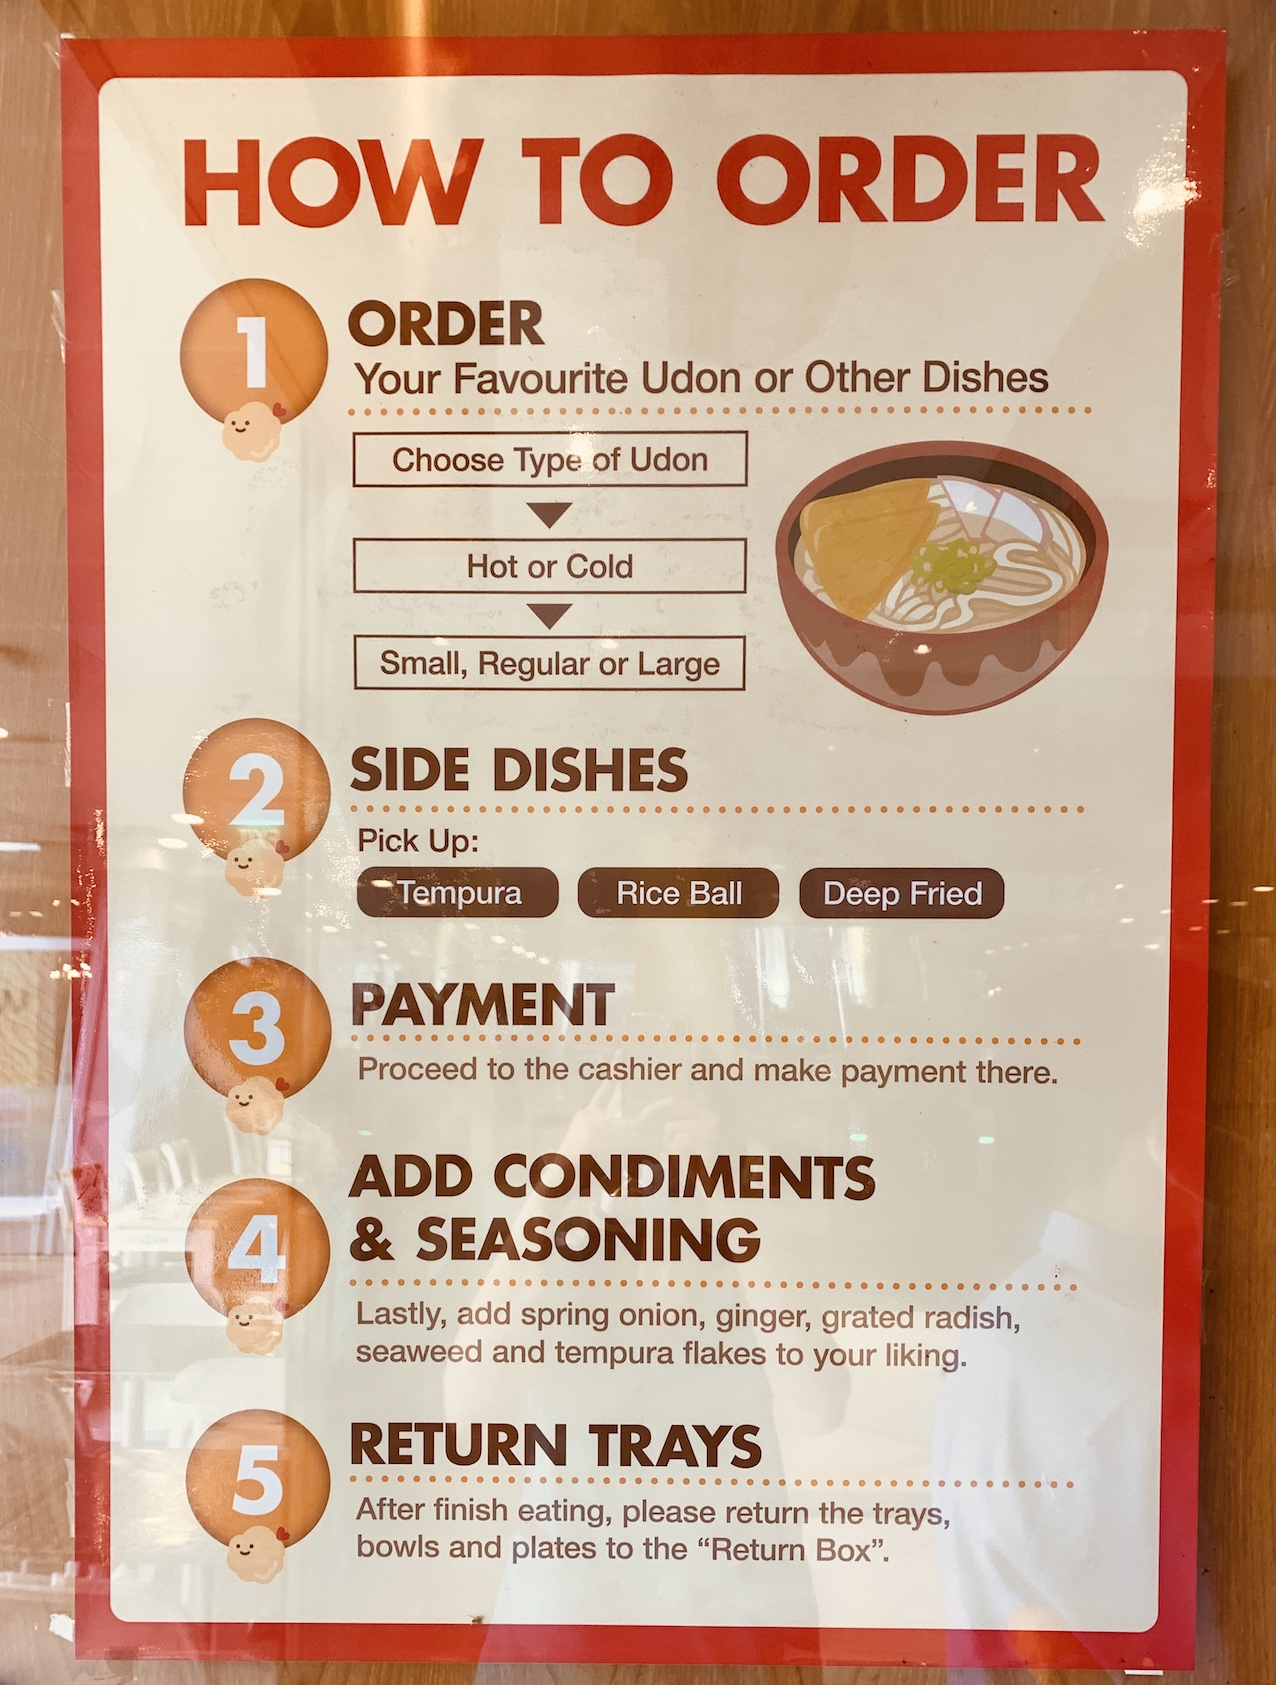 Maru Ten Udon - How To Order